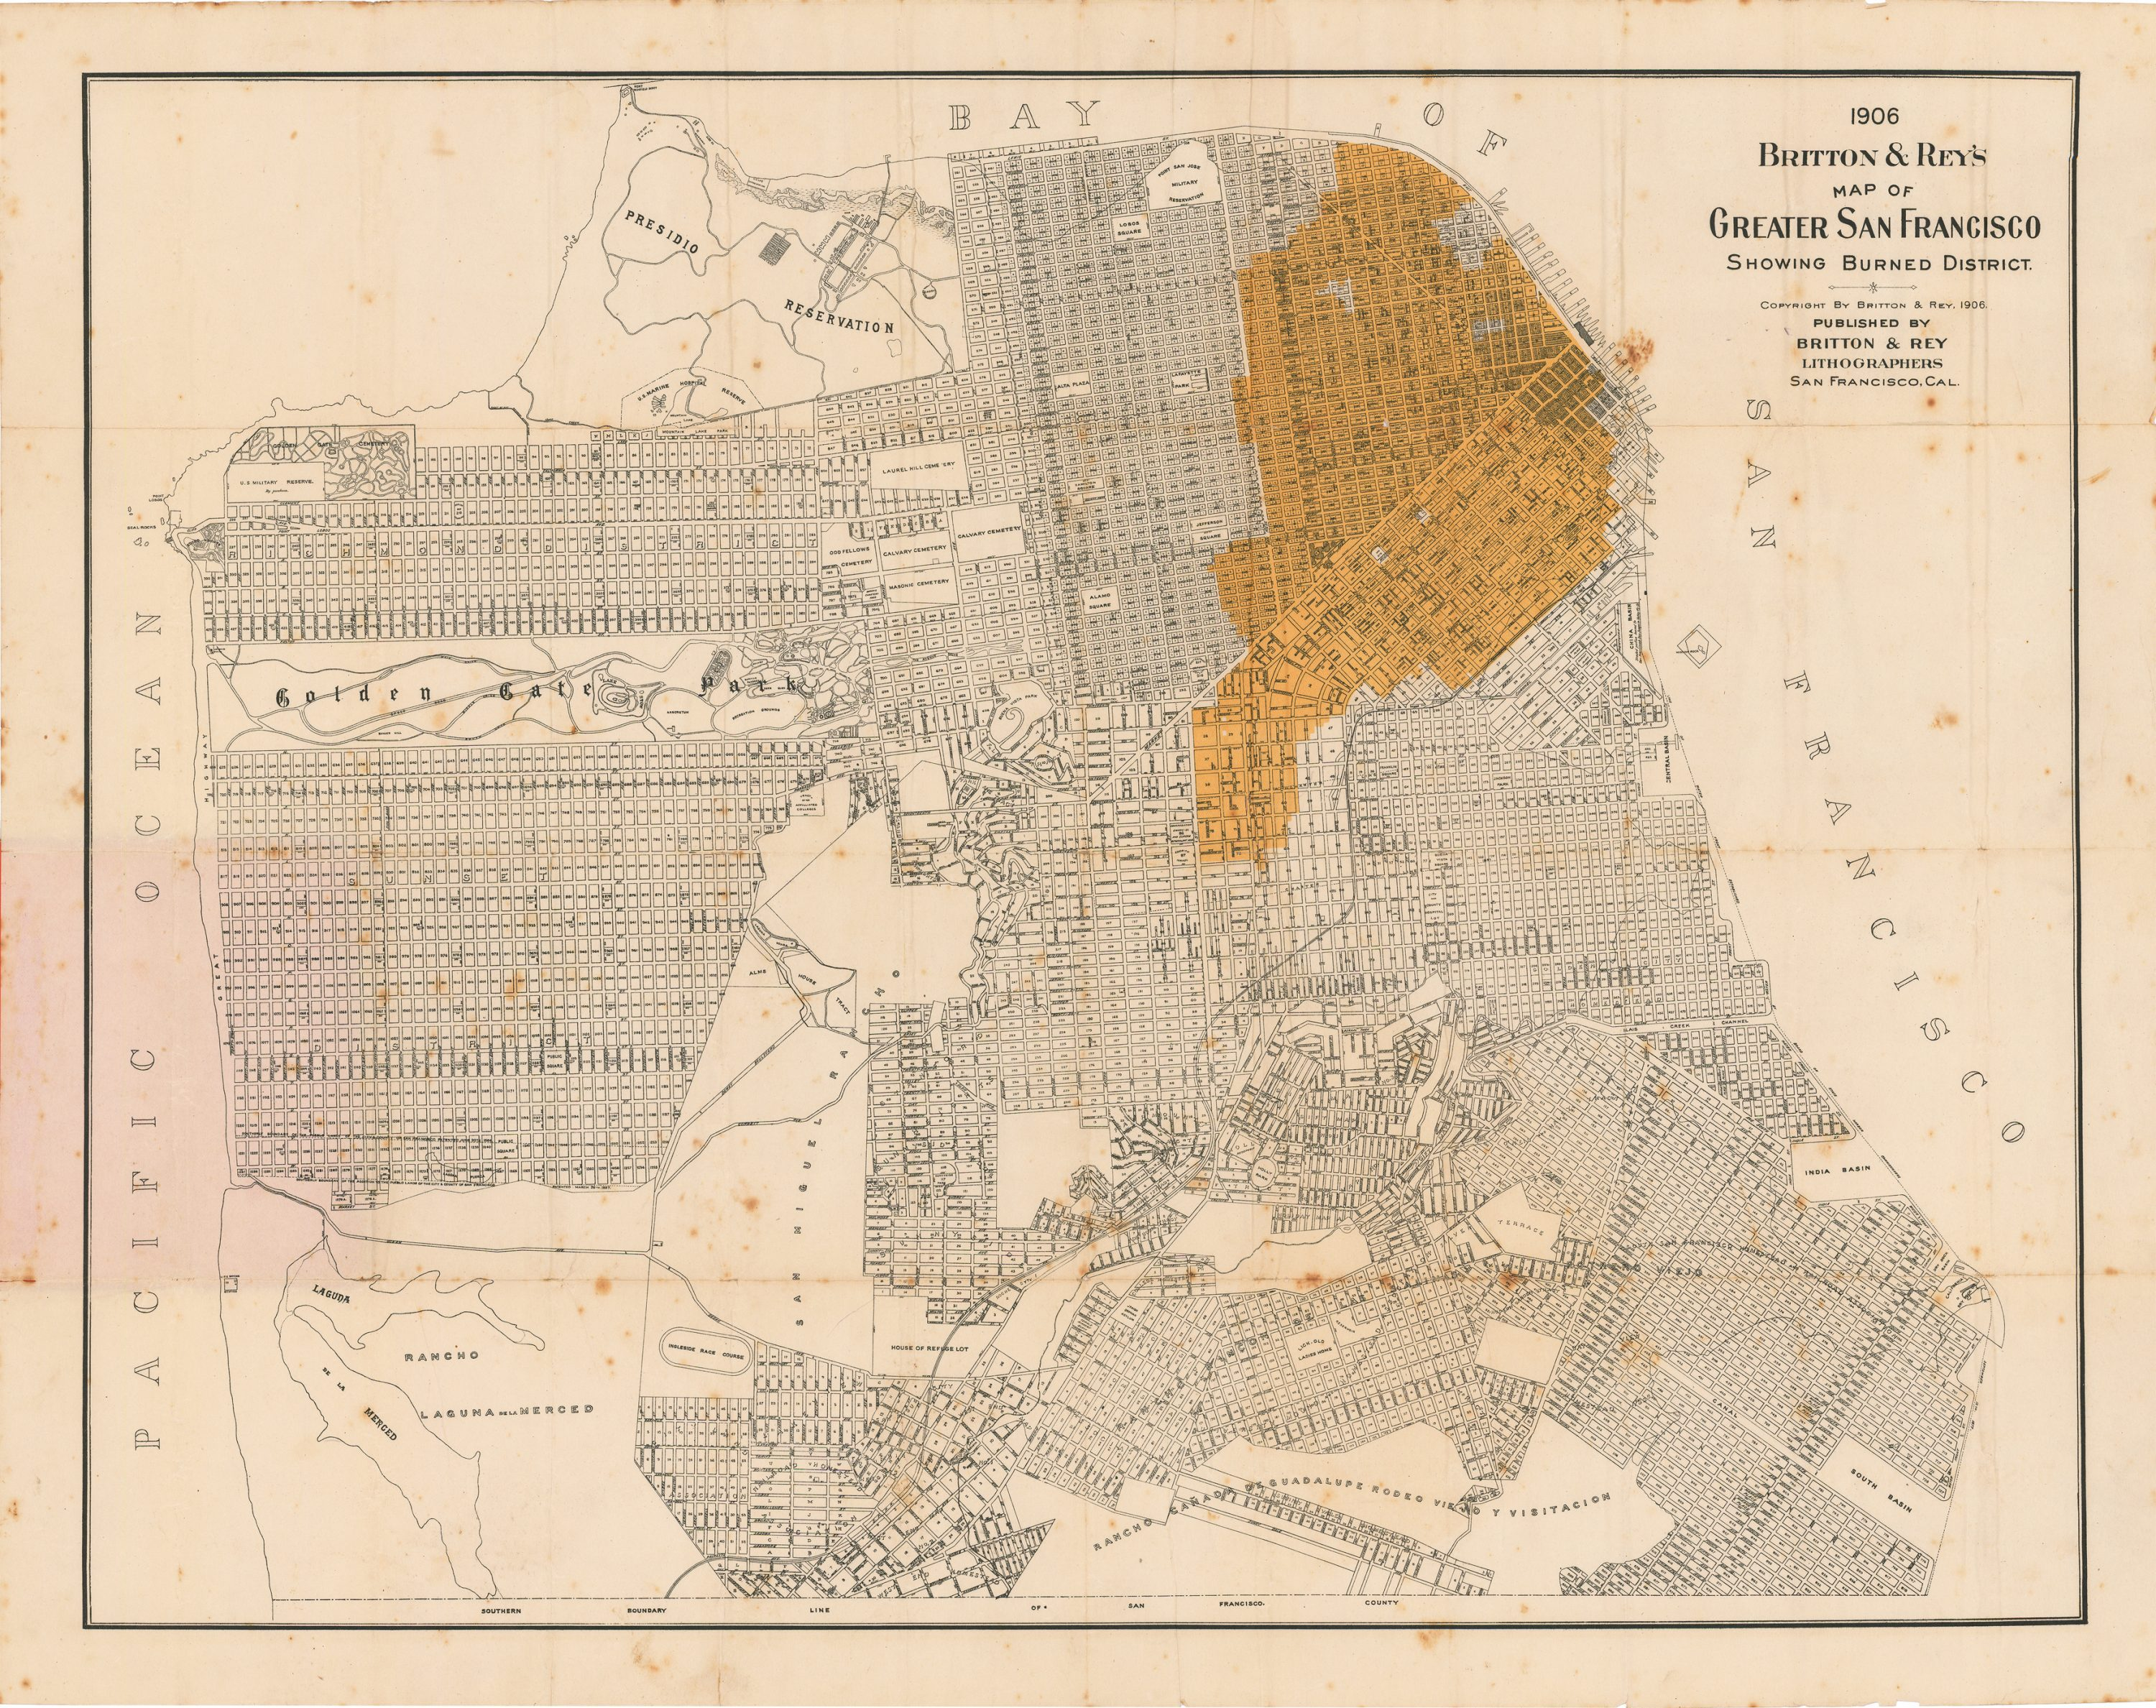 Unrecorded Map Of The Destruction Following The San Francisco